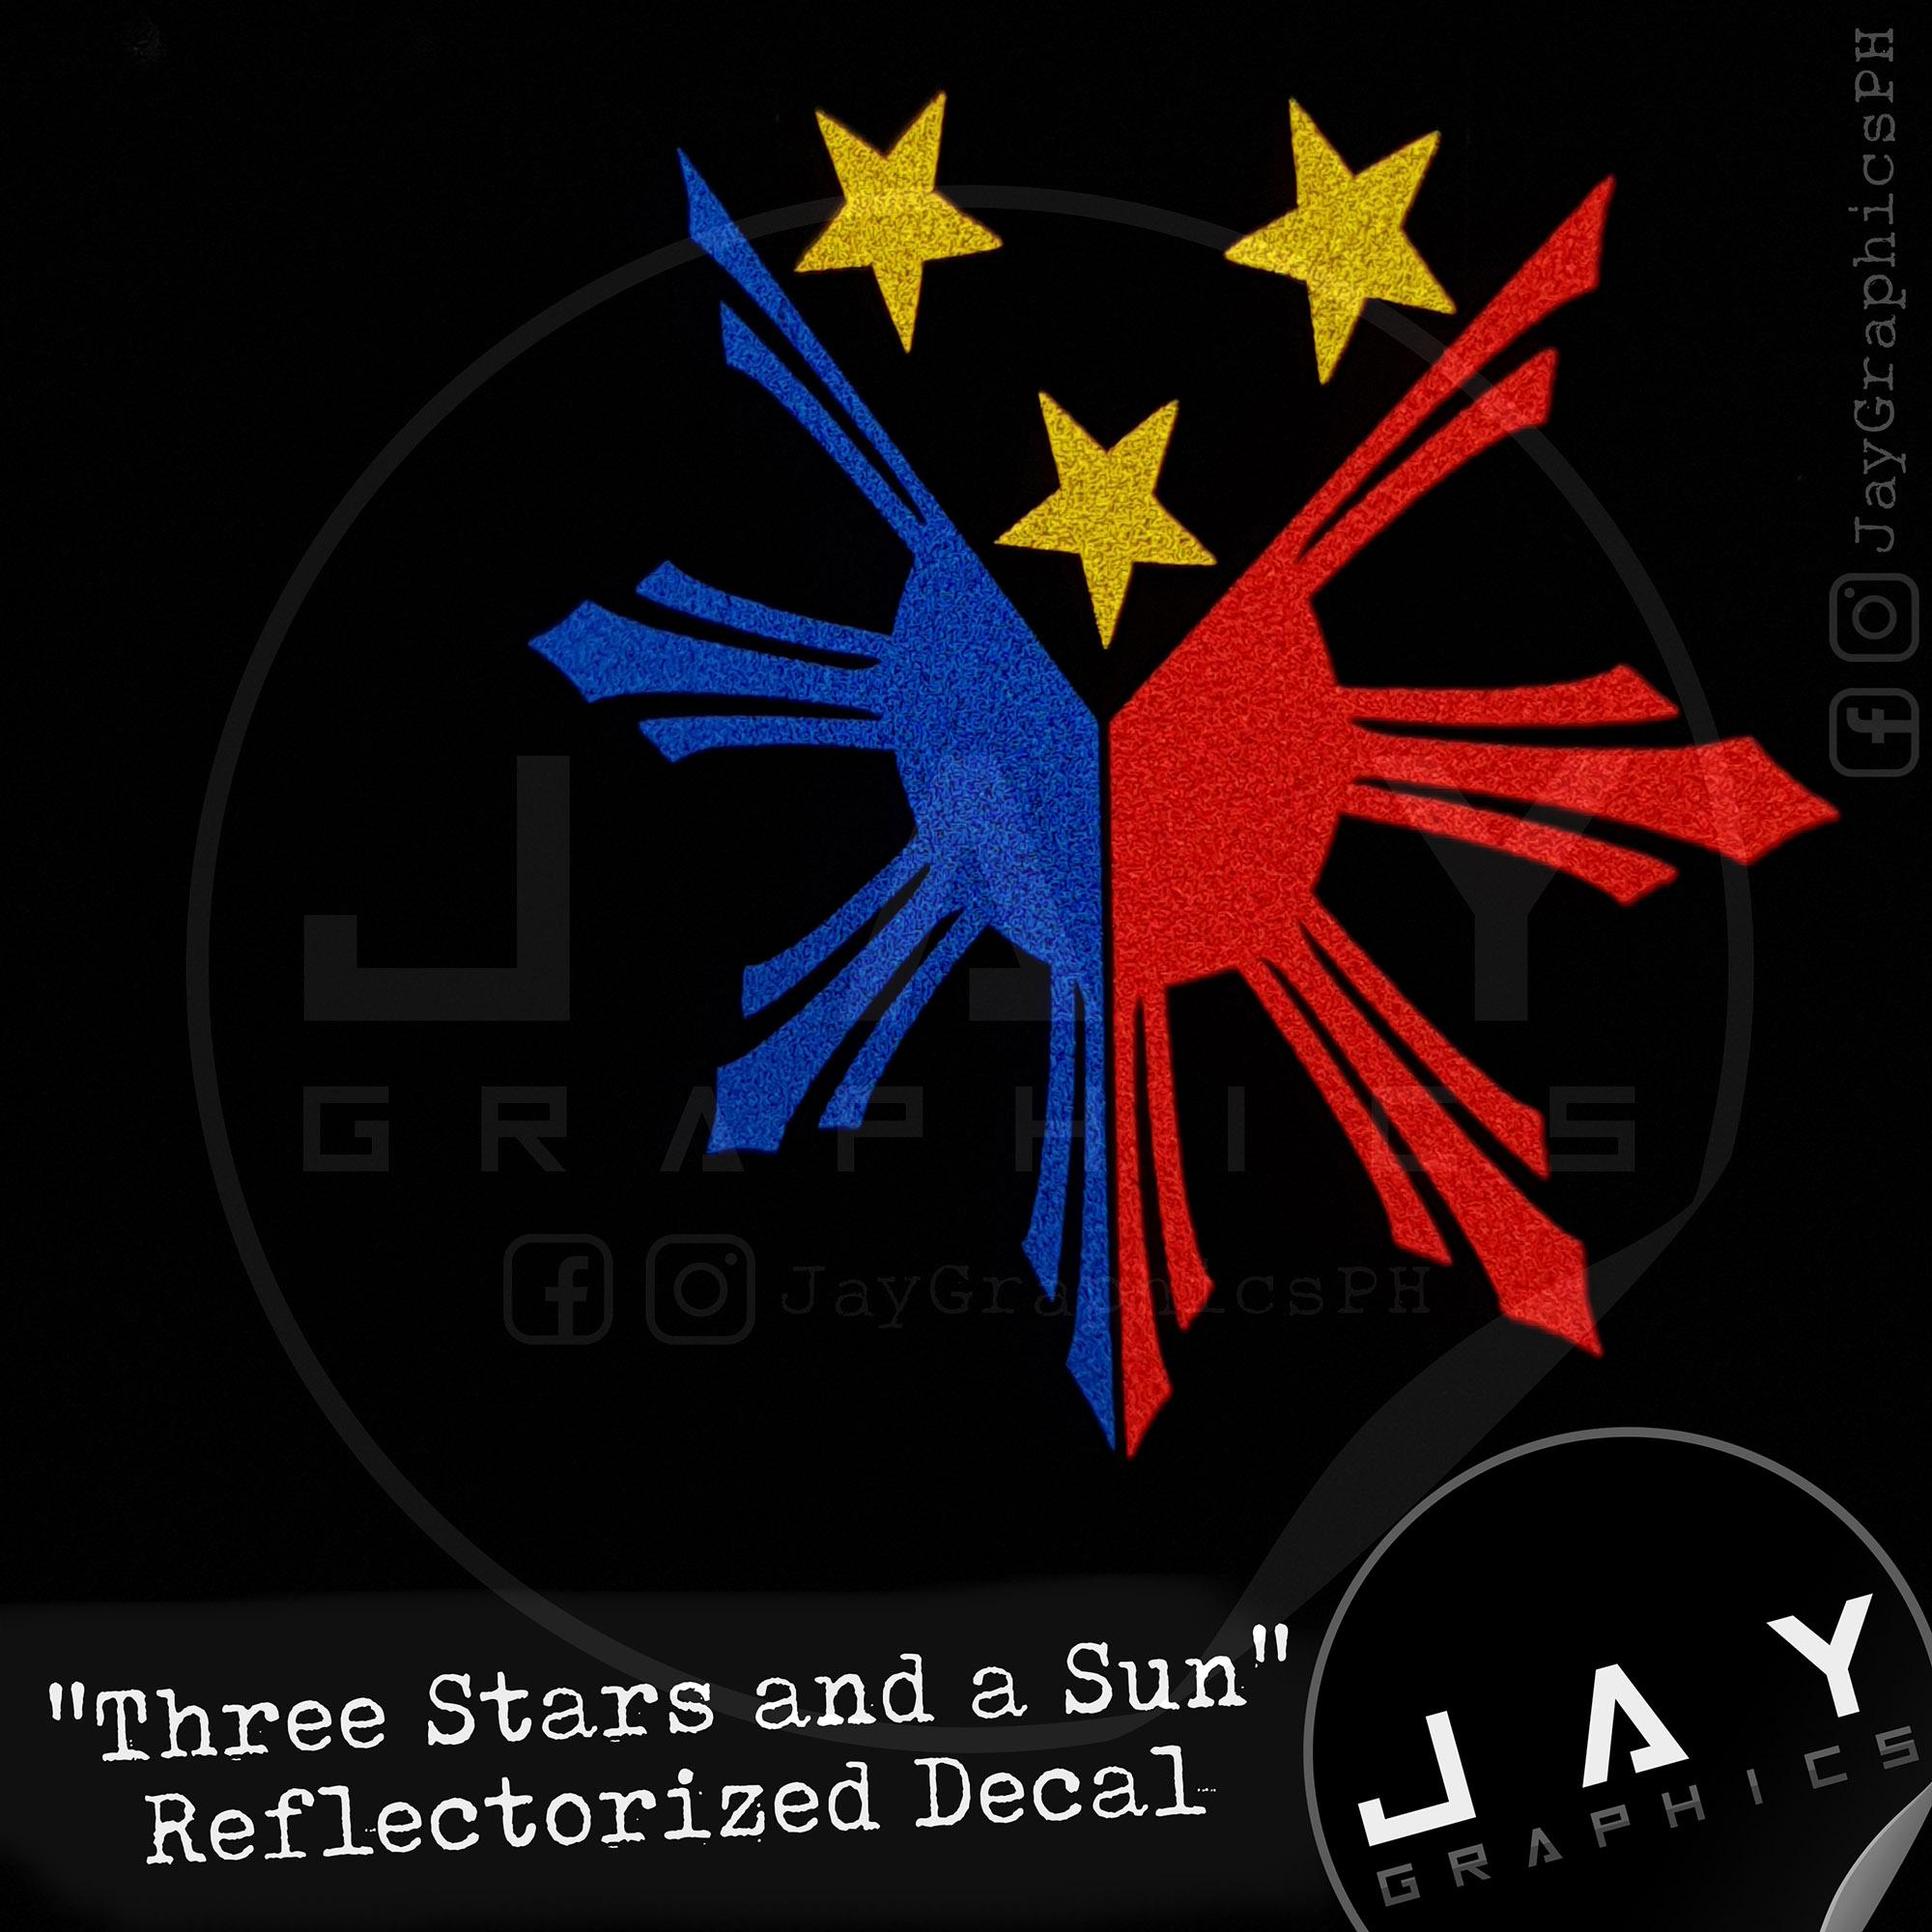 Three Stars and a Sun Decal - Reflectorized